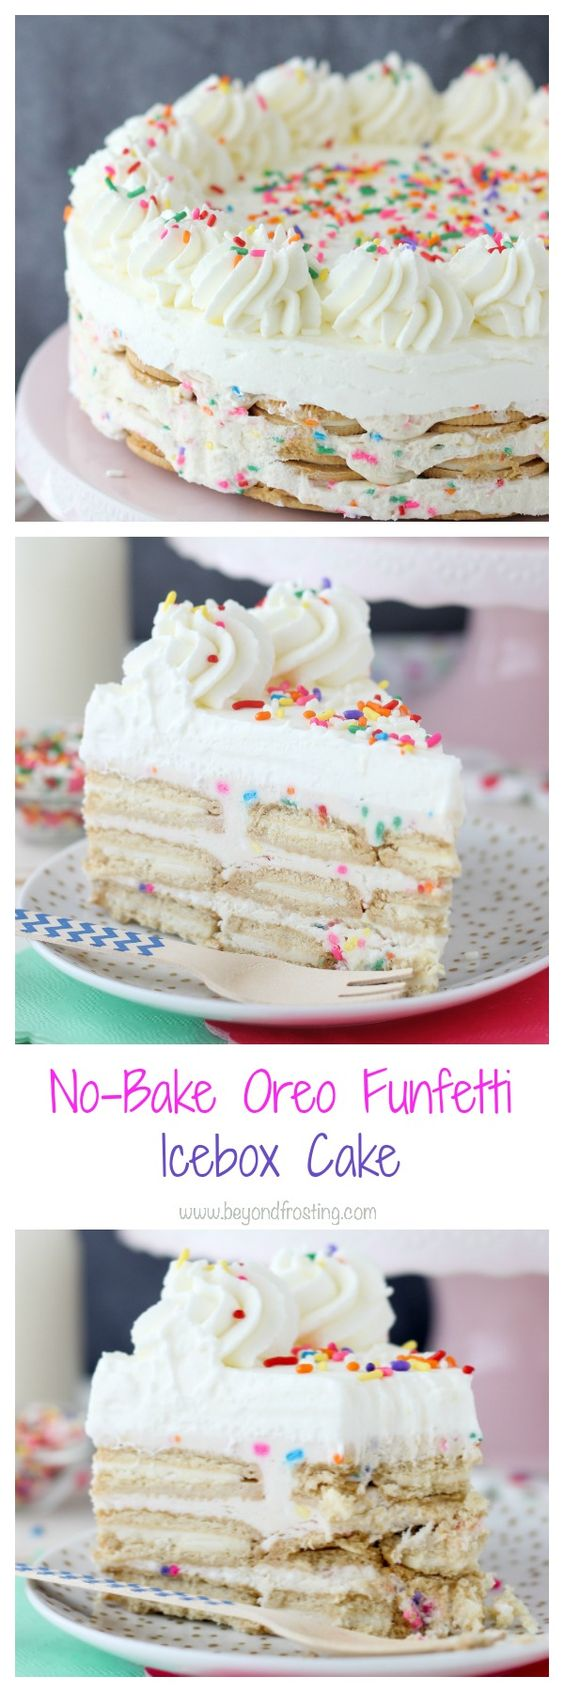 1No-Bake Oreo Funfetti Icebox Cake